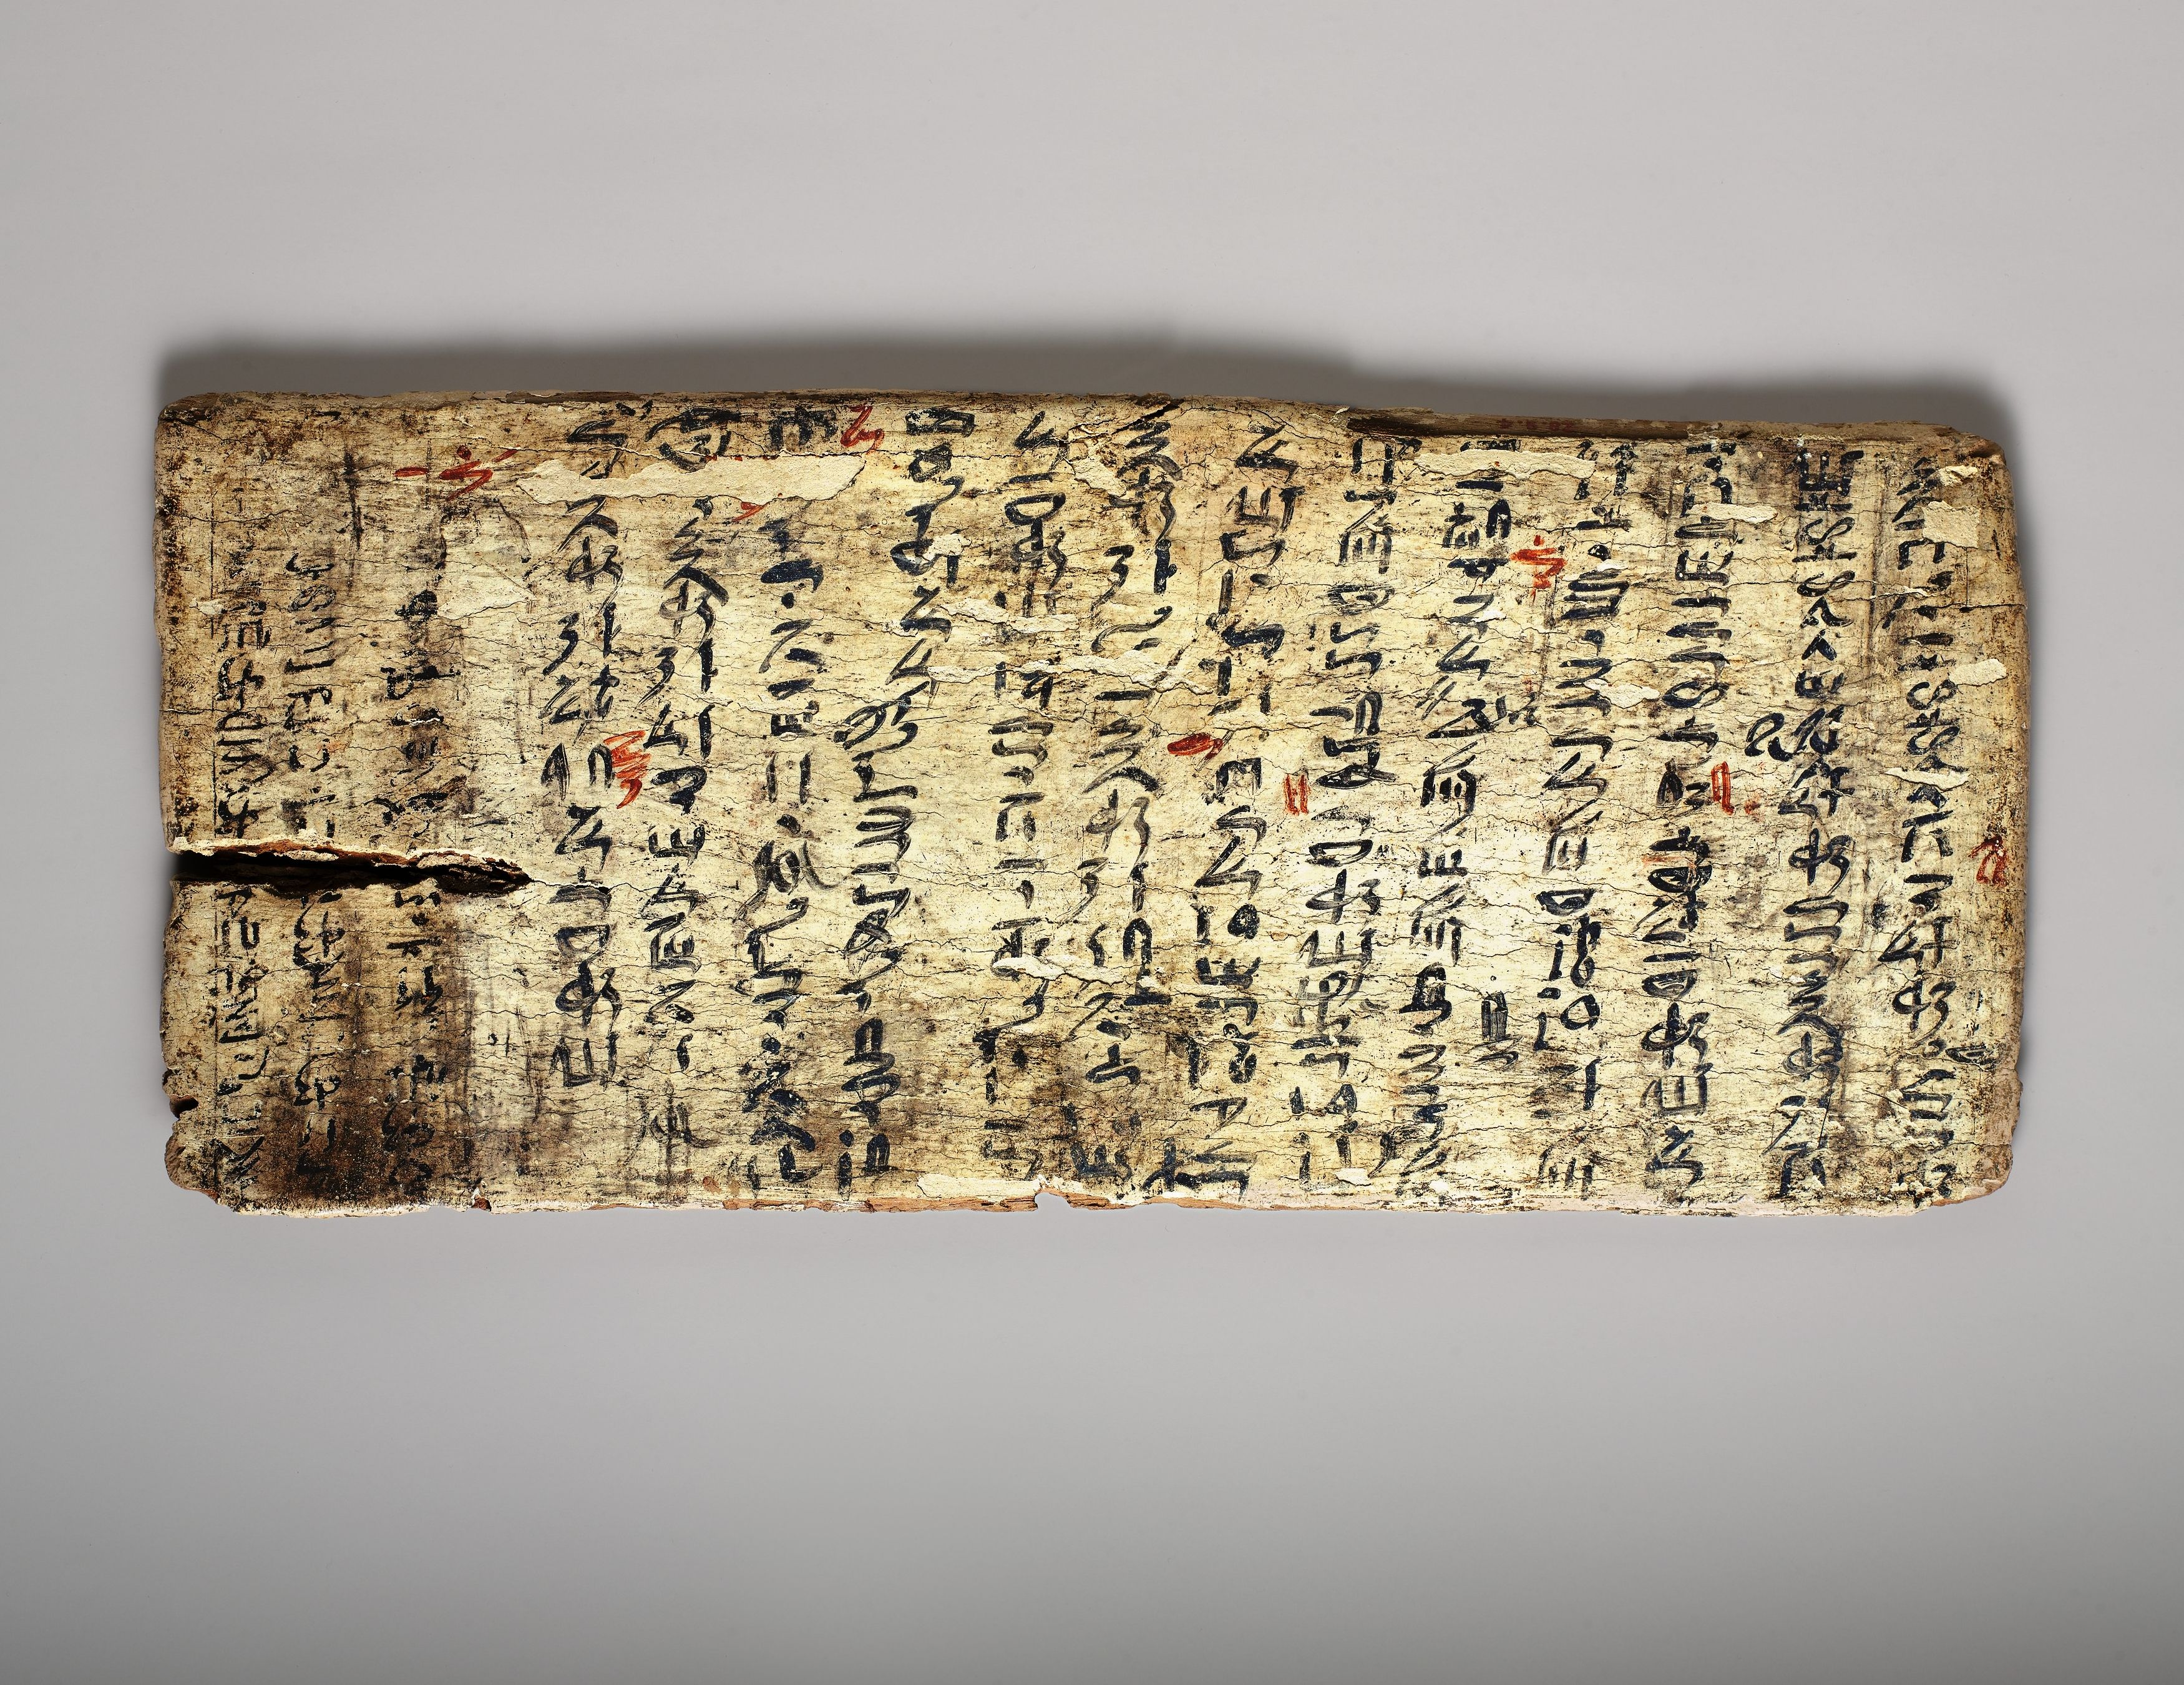 .:. Hieratic Writing Board Middle Kingdom 12th Dynasty Date: ca. 1981–1802 B.C.E. Northern Upper Egypt, Akhmim or Thebes Sycamore wood whitened with gesso http://www.metmuseum.org/collection/the-collection-online/search/544319 .:.